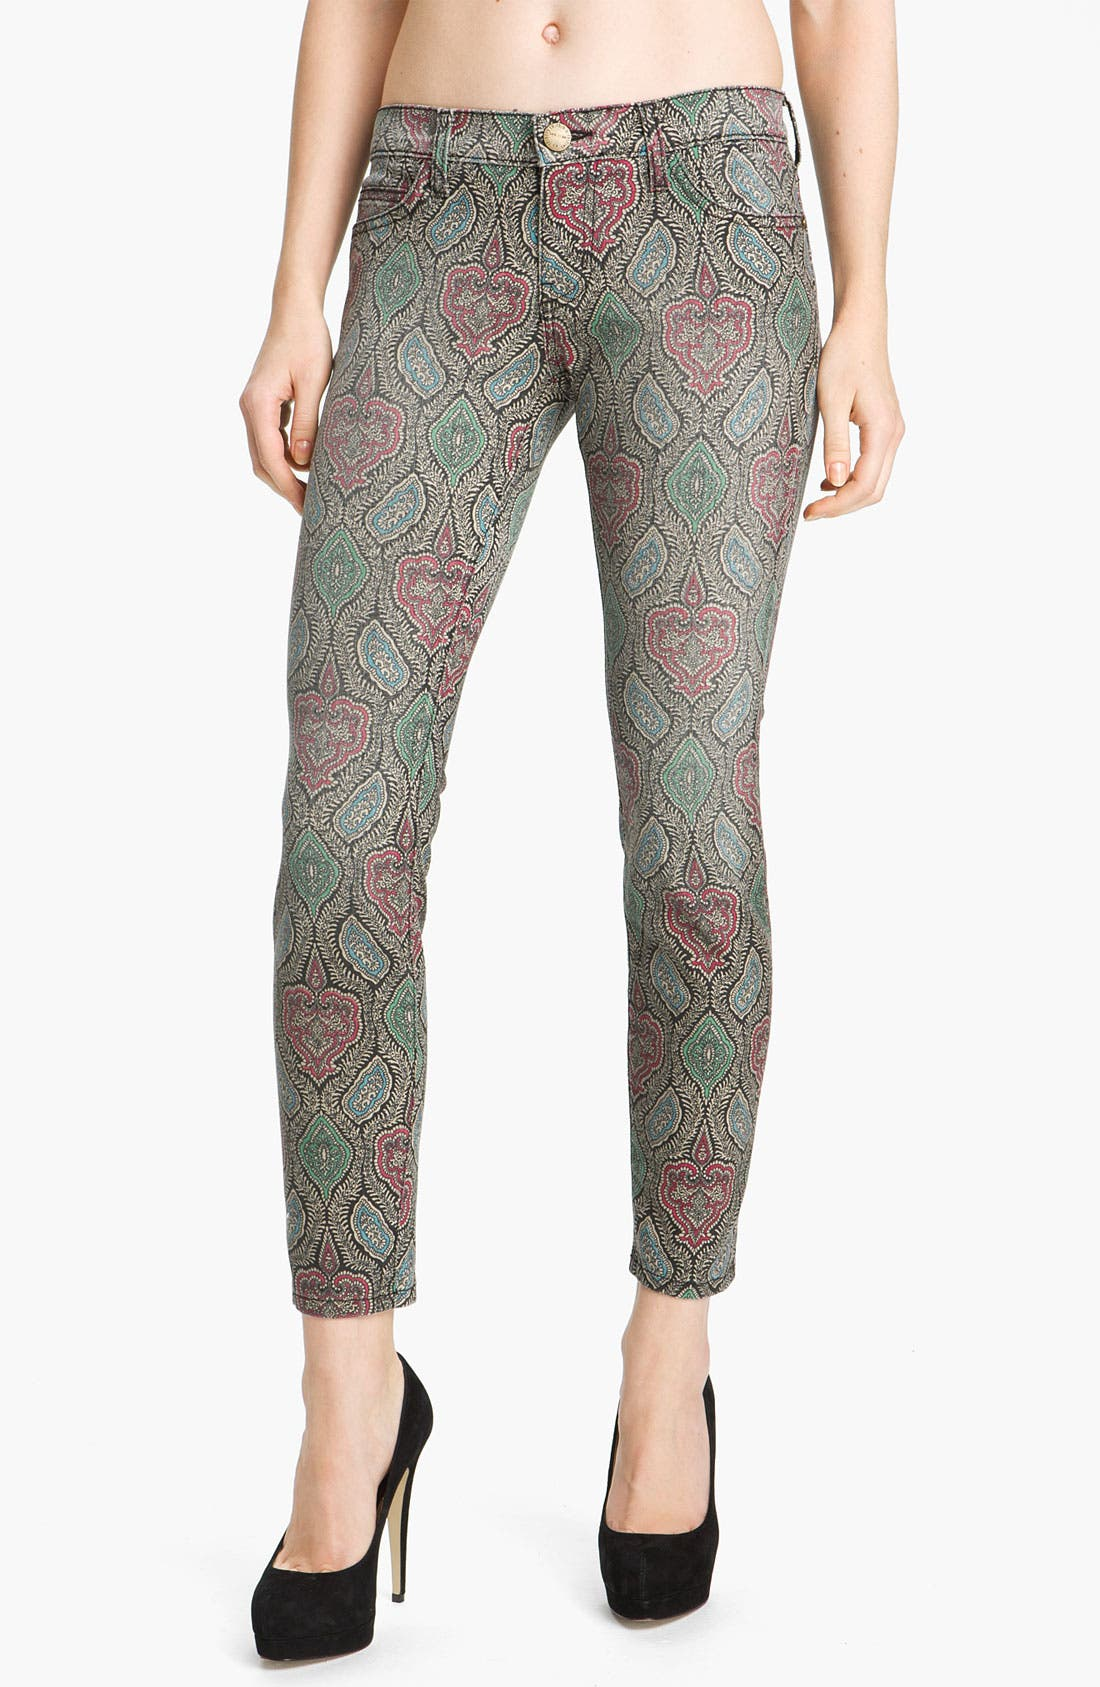 CURRENT/ELLIOTT 'The Stiletto' Skinny Jeans, Main, color, 300